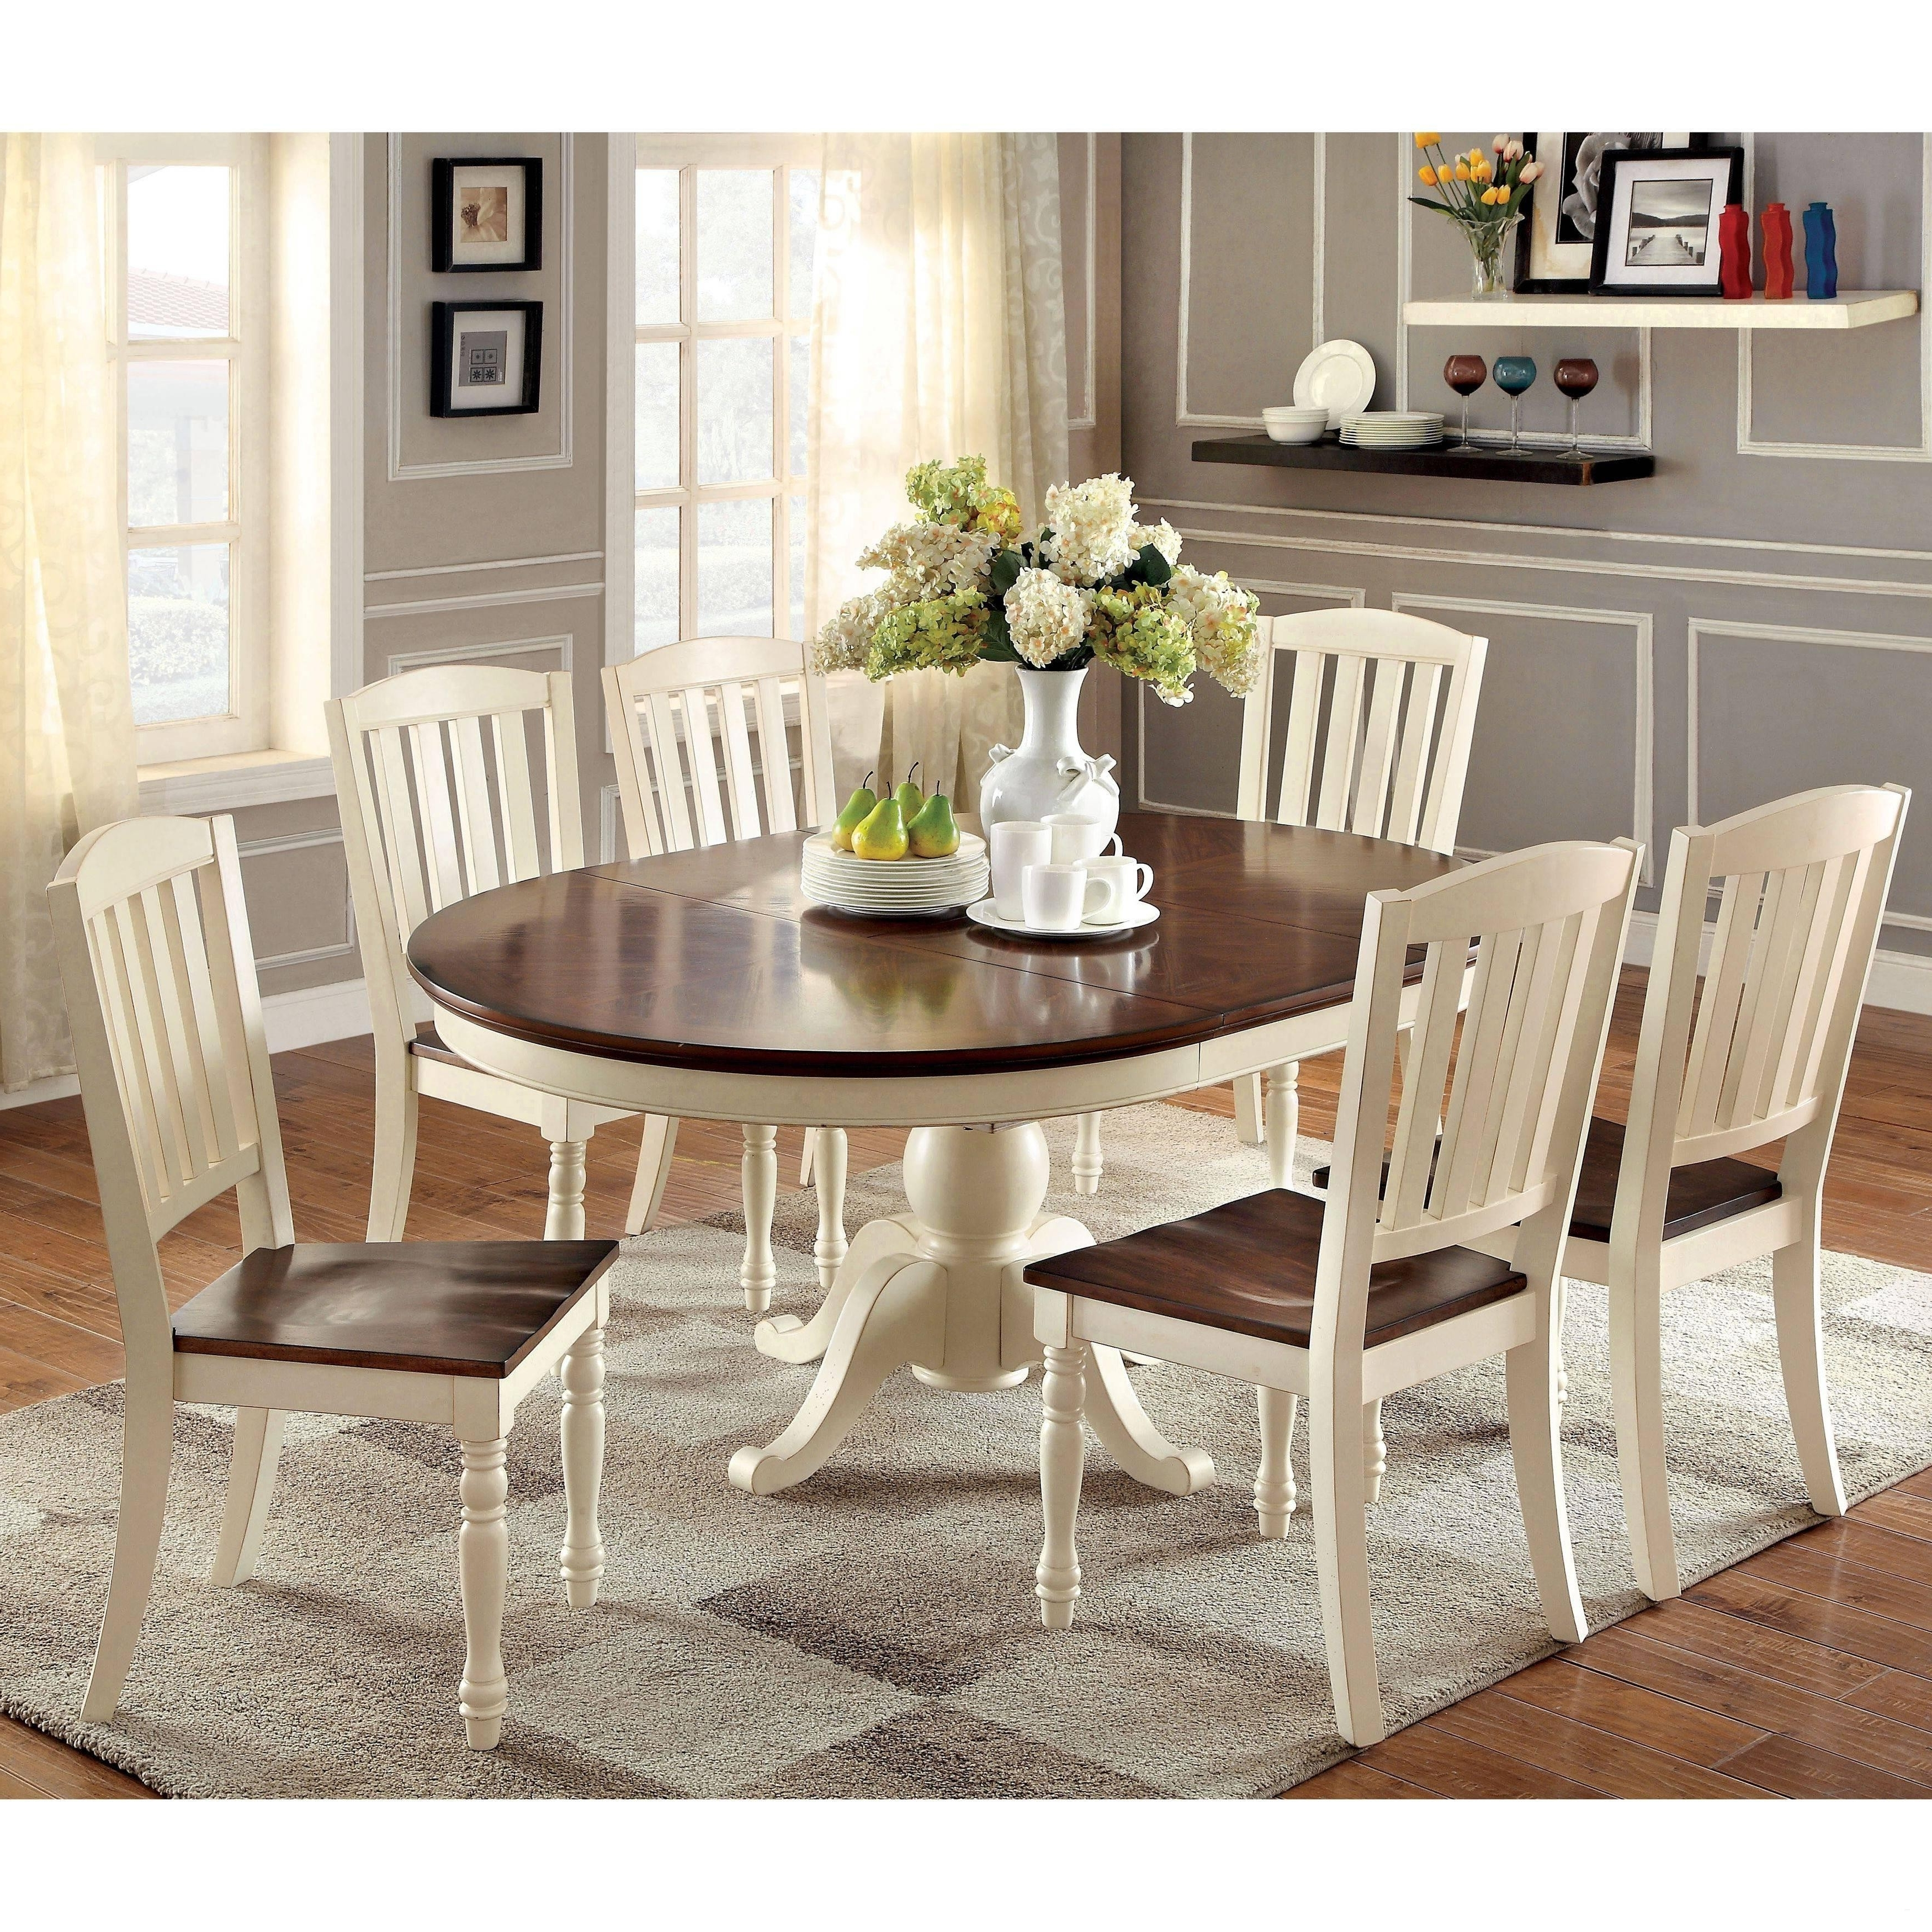 Well Known Round 6 Seater Dining Tables With Regard To 4 6 Seater Dining Table New Fresh Round Dining Table Set For  (View 13 of 25)